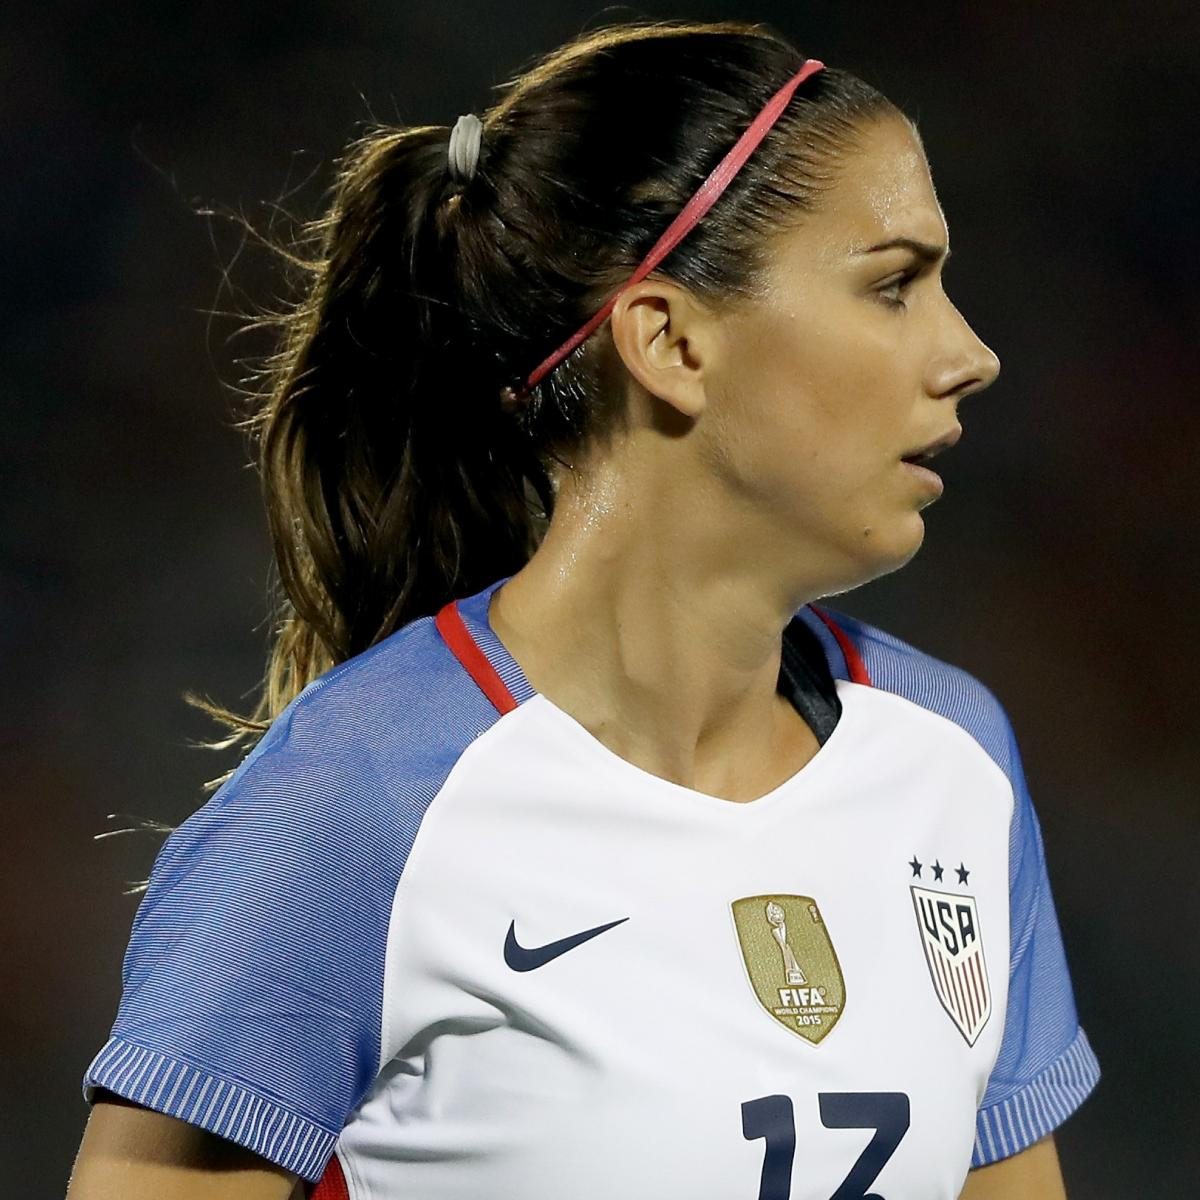 TMZ Obtains Police Video of Alex Morgan After Being Escorted out of Epcot Center